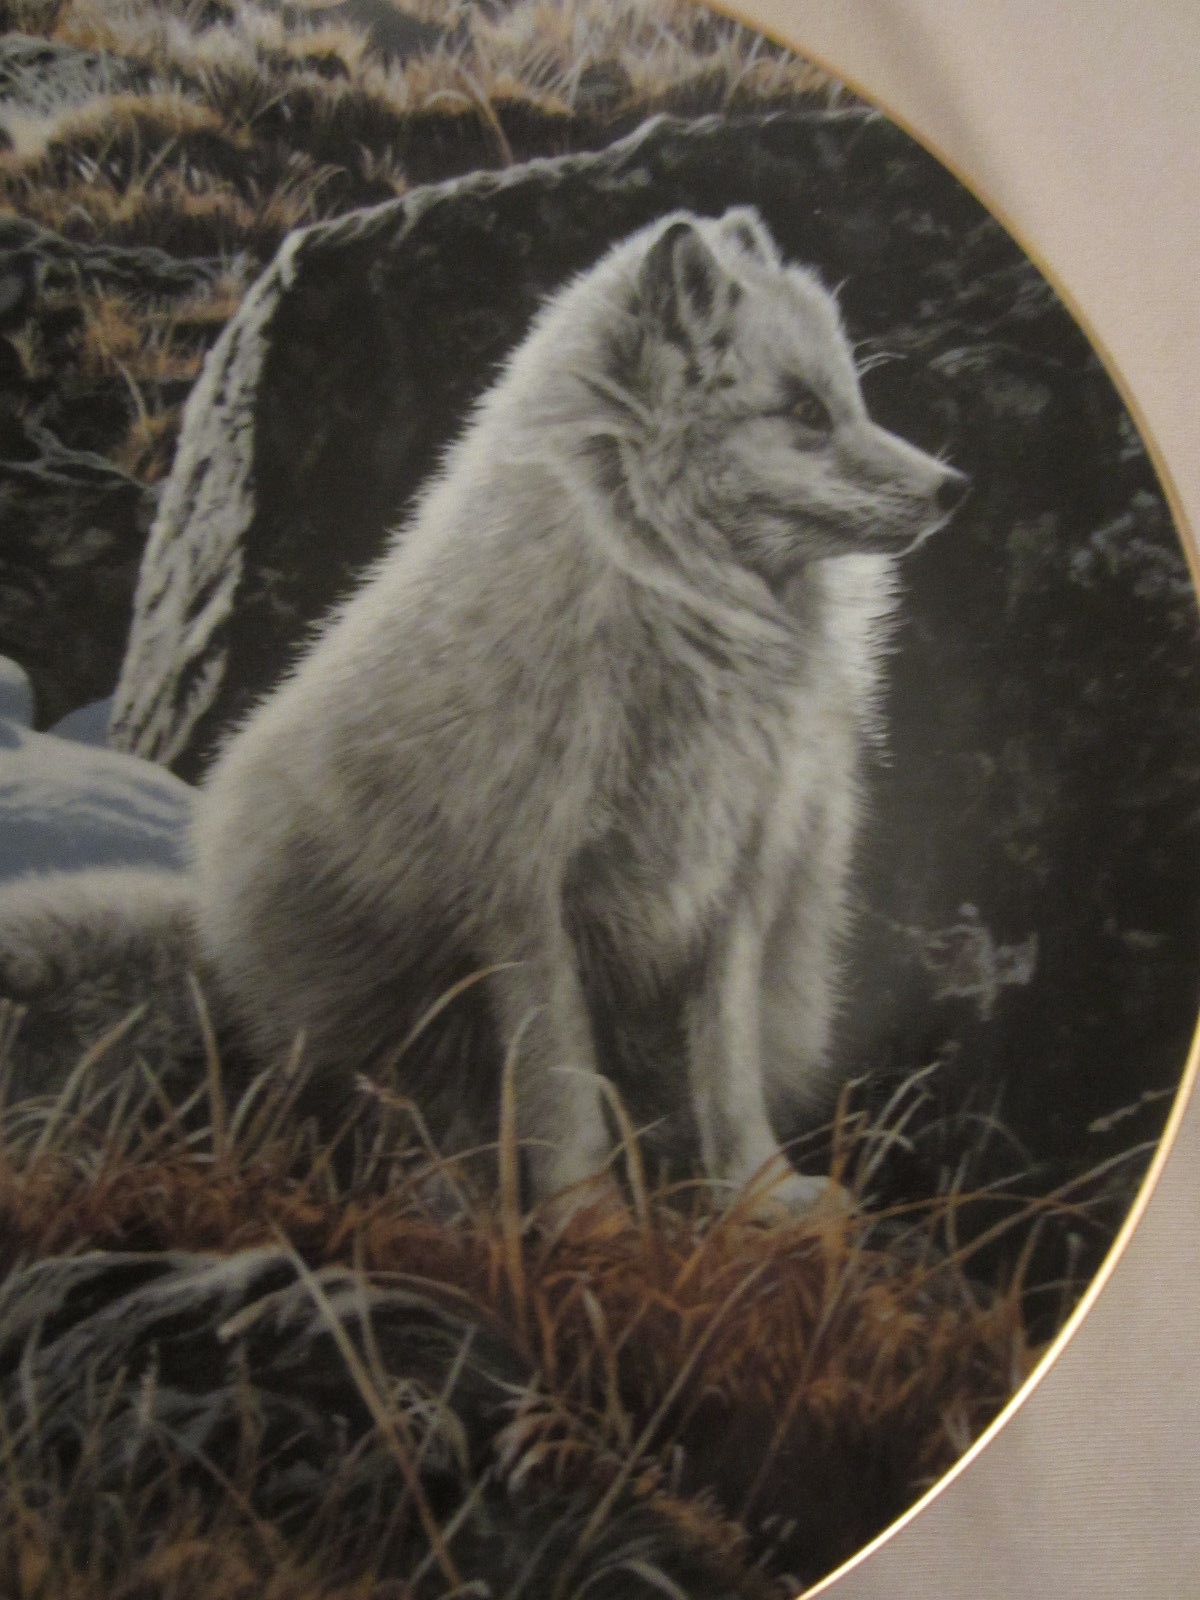 ARCTIC FOX Collector Plate NORTHERN MORNING Ron Parker NATURE'S QUIET MOMENTS